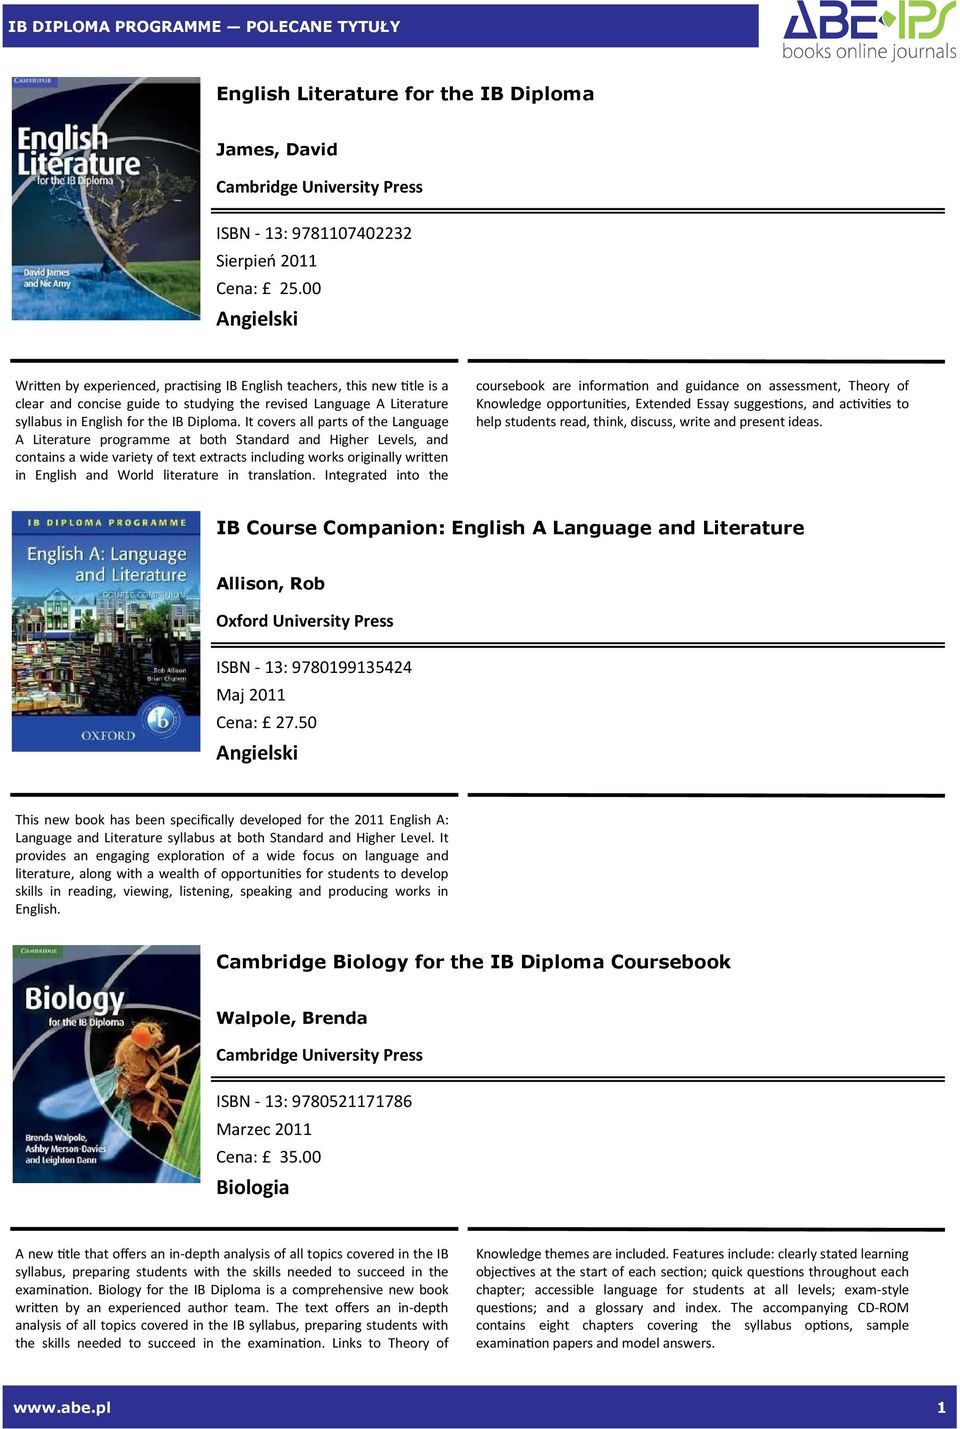 It covers all parts of the Language A Literature programme at both Standard and Higher Levels, and contains a wide variety of text extracts including works originally wrien in English and World